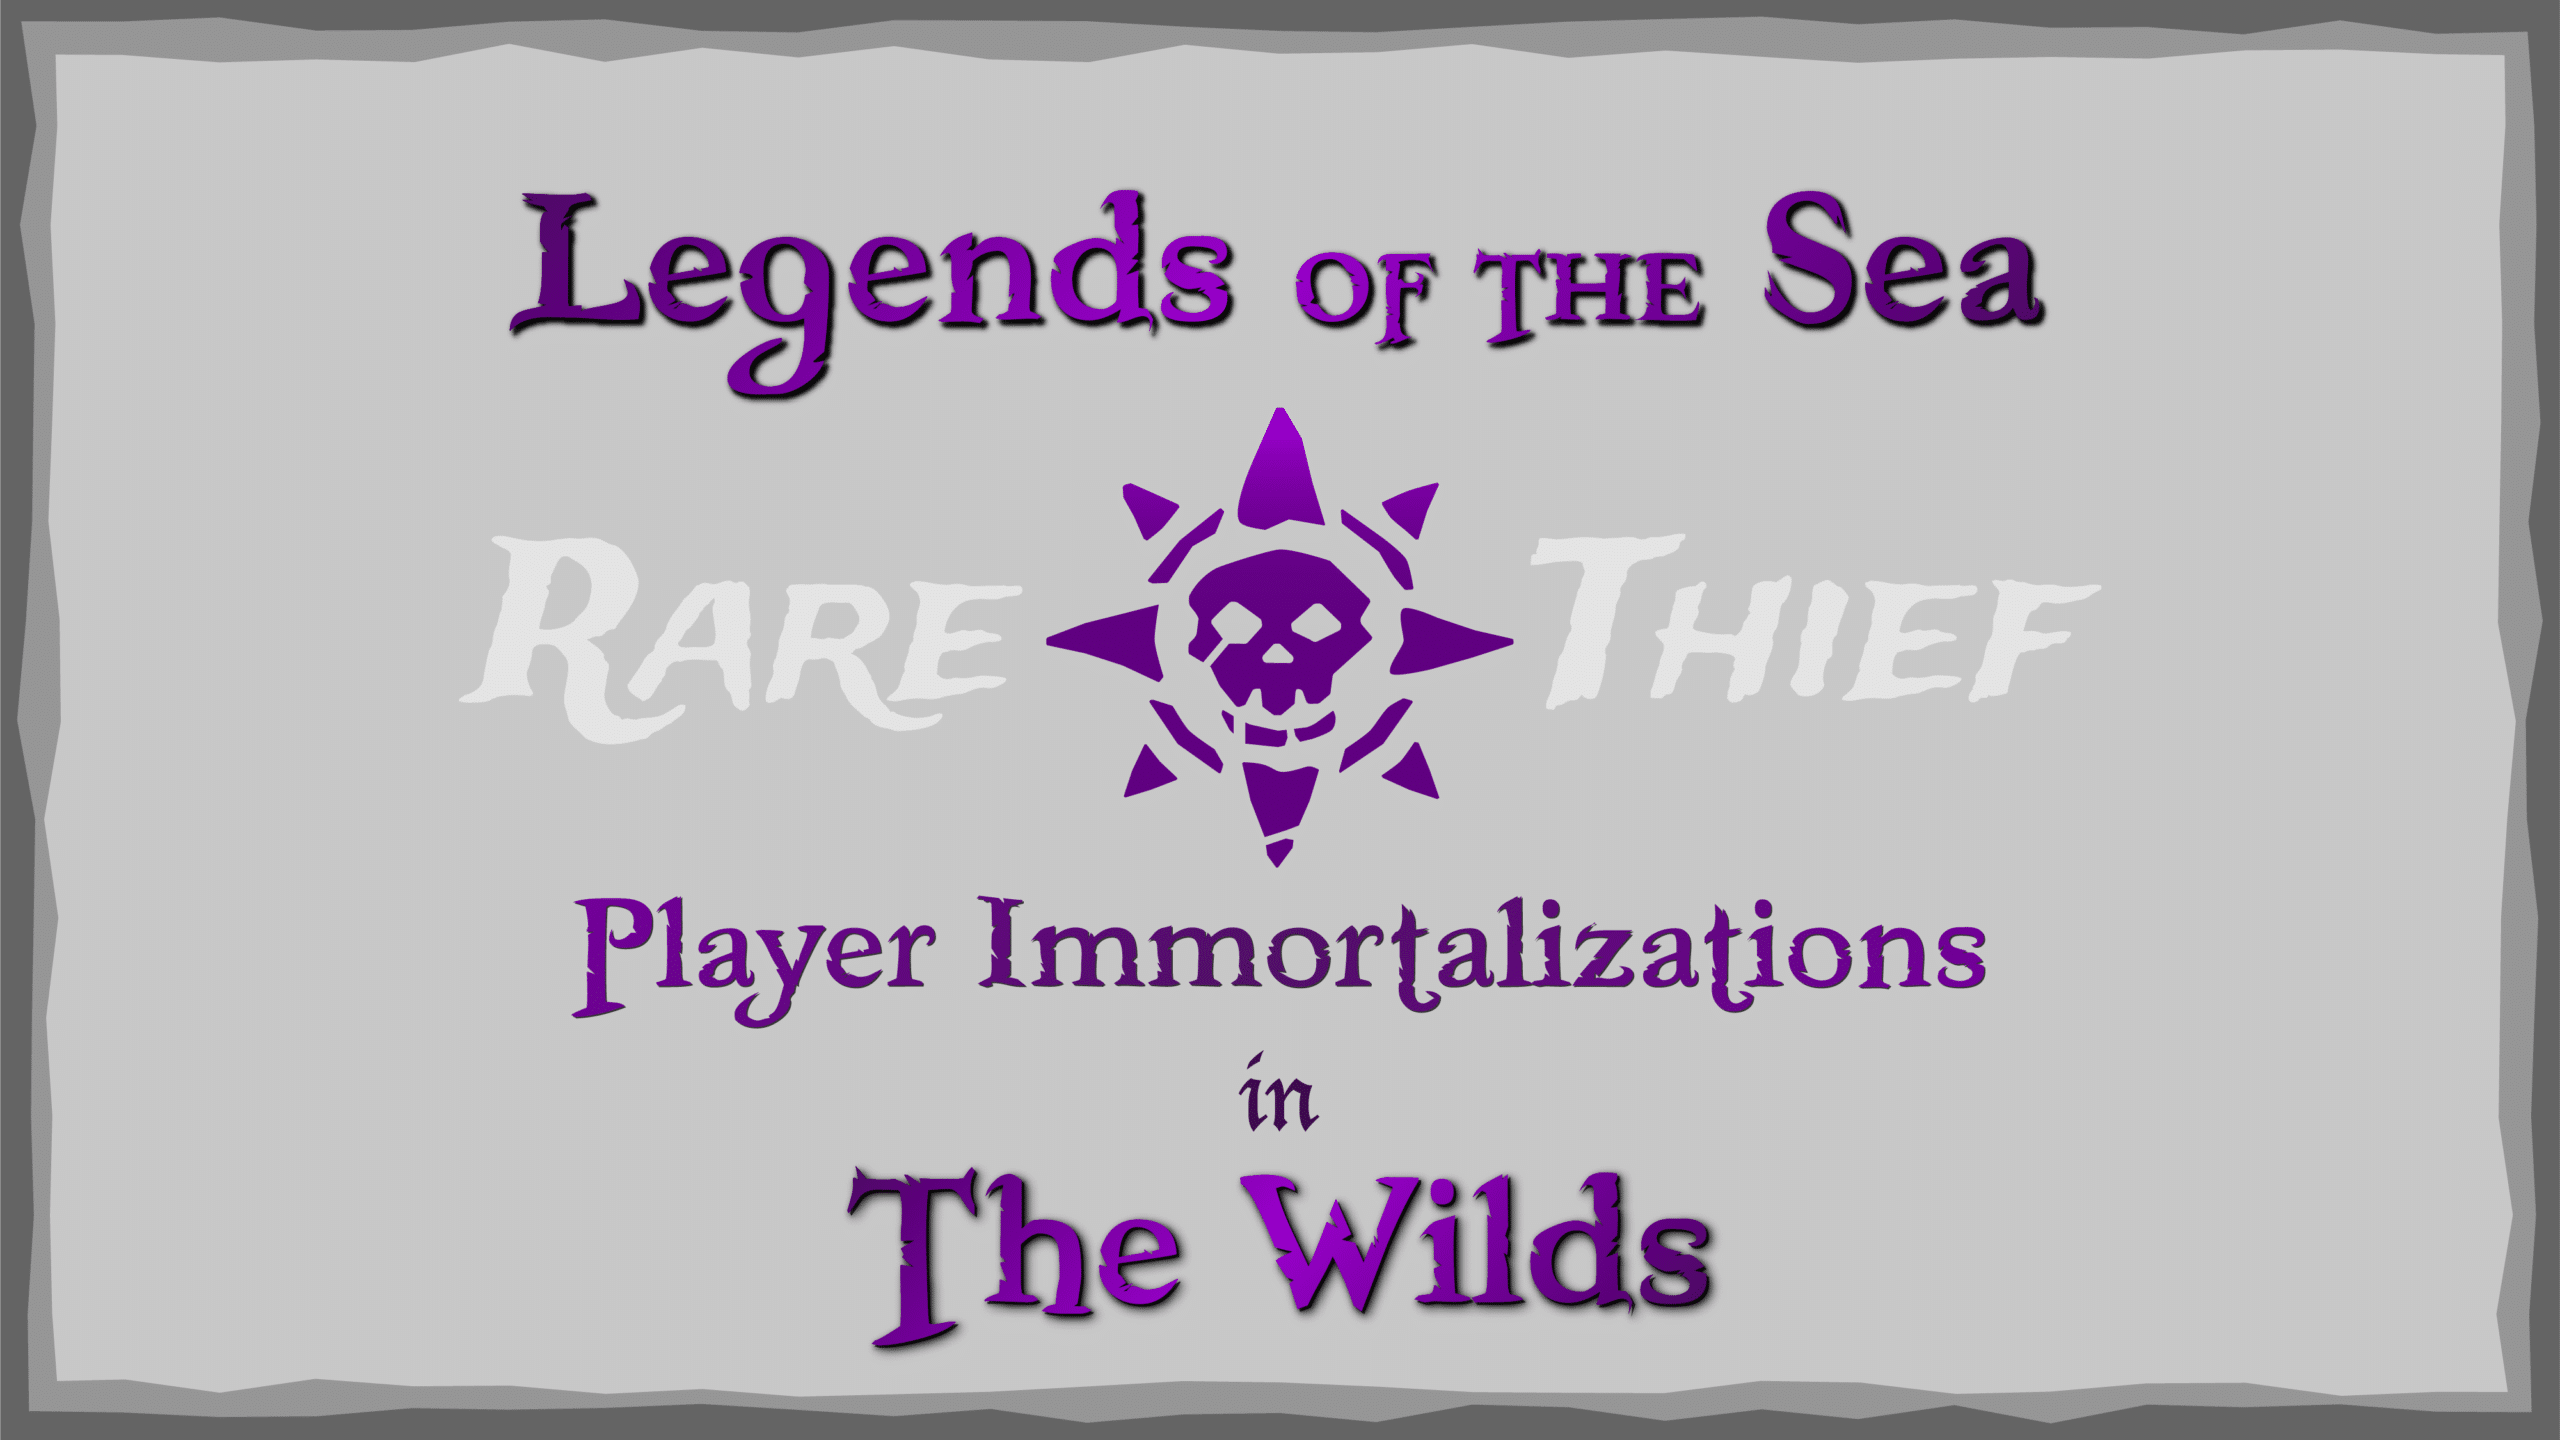 Legends-of-the-Sea_The-Wilds